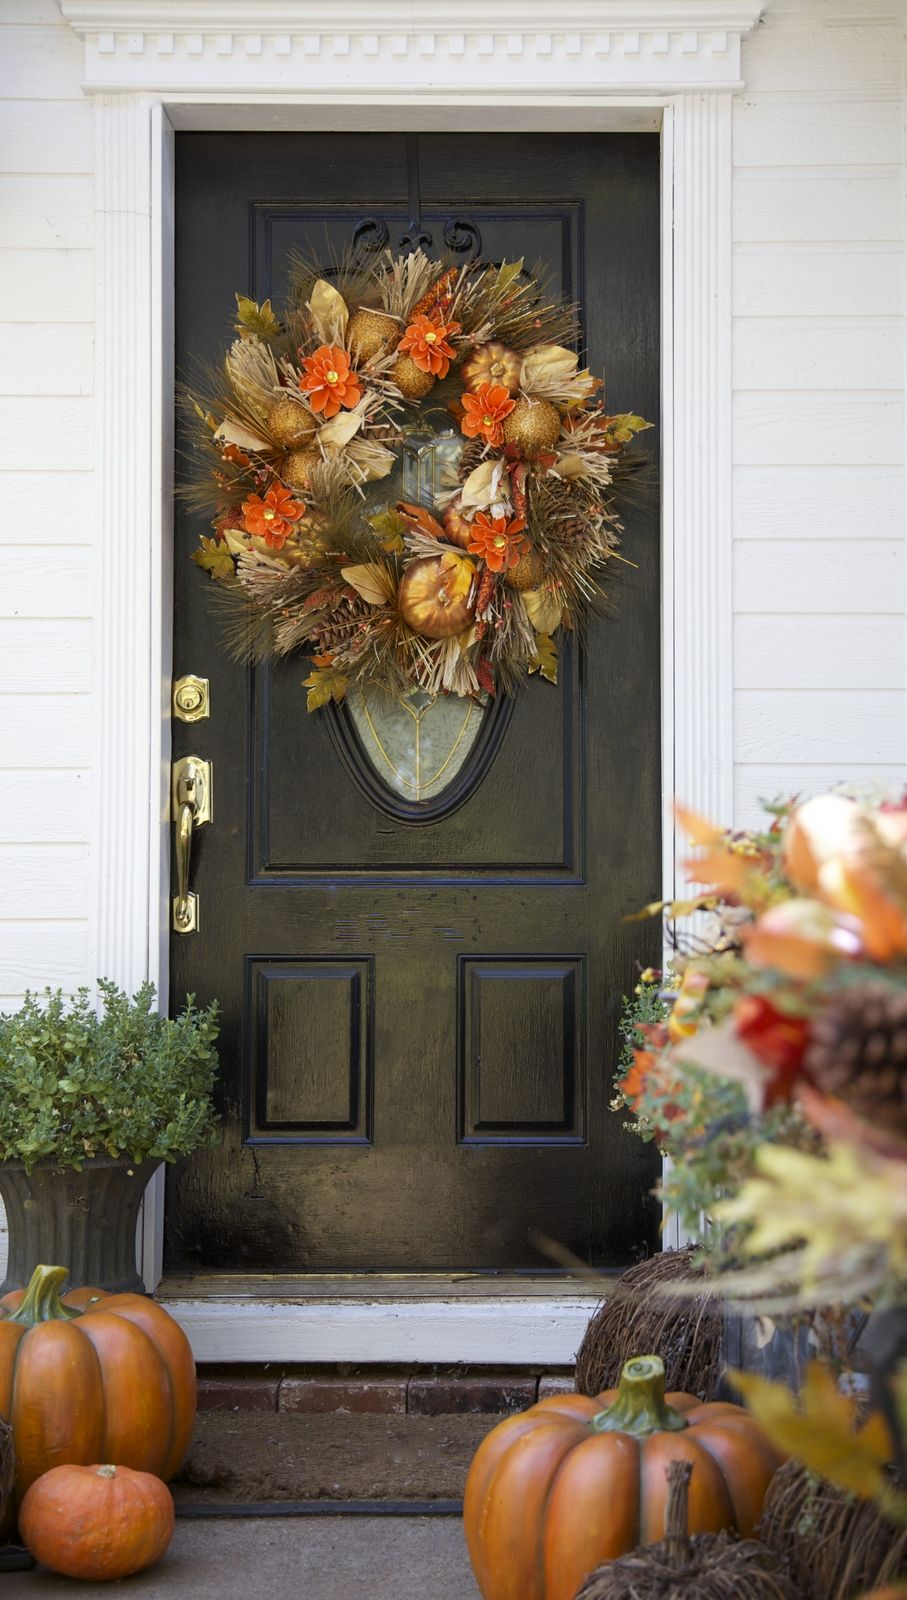 Decorating Your Front Door for Fall Front doors - Front Door Halloween Decorations